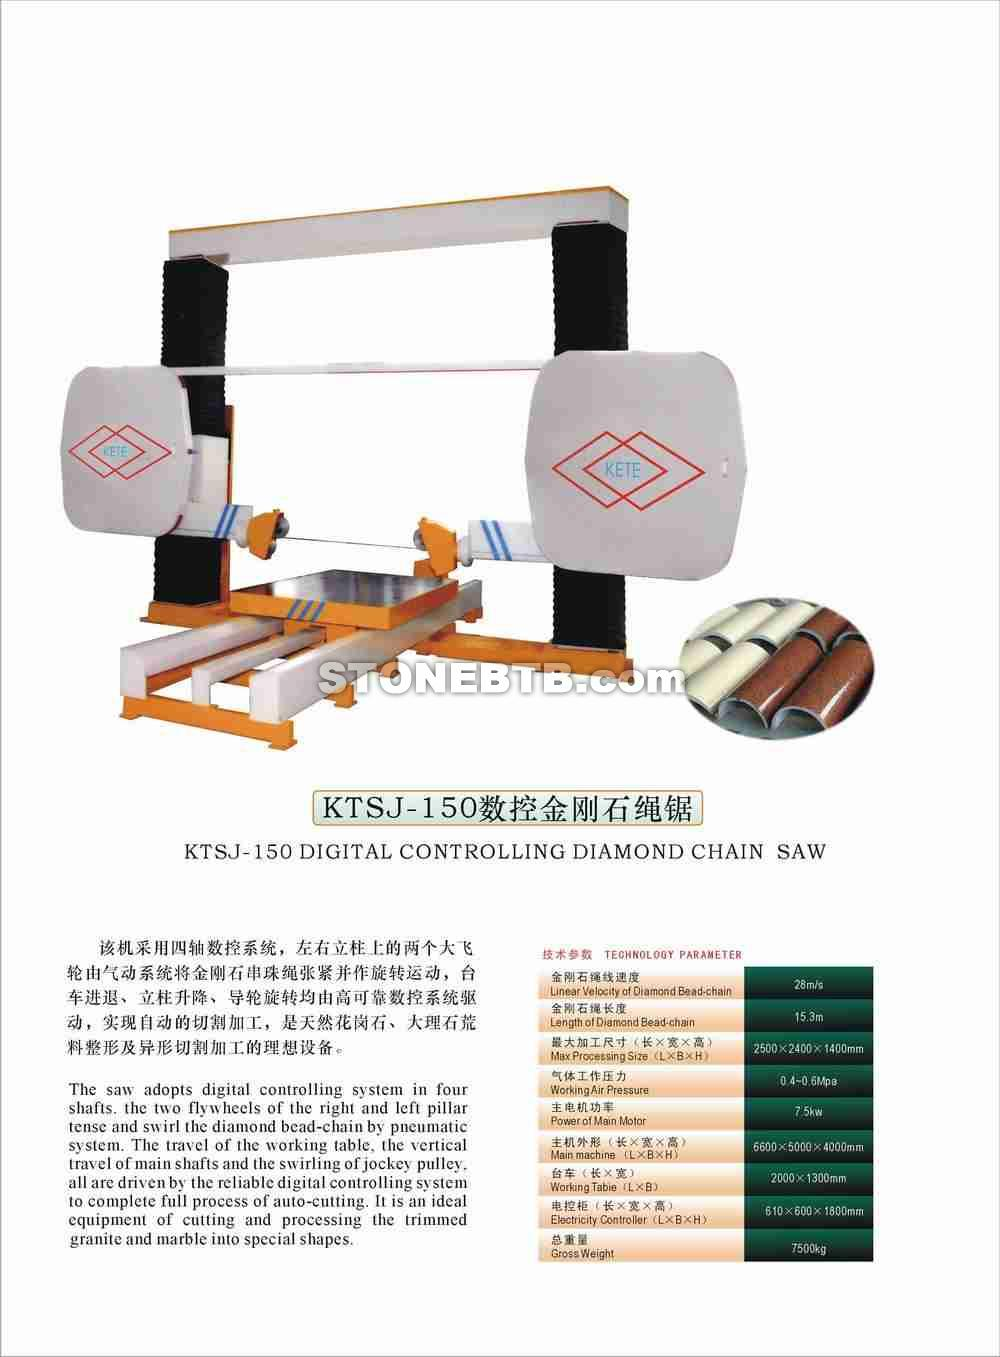 KTSJ 150 DIGITAL CONTROLLING DIAMOND CHAIN SAW